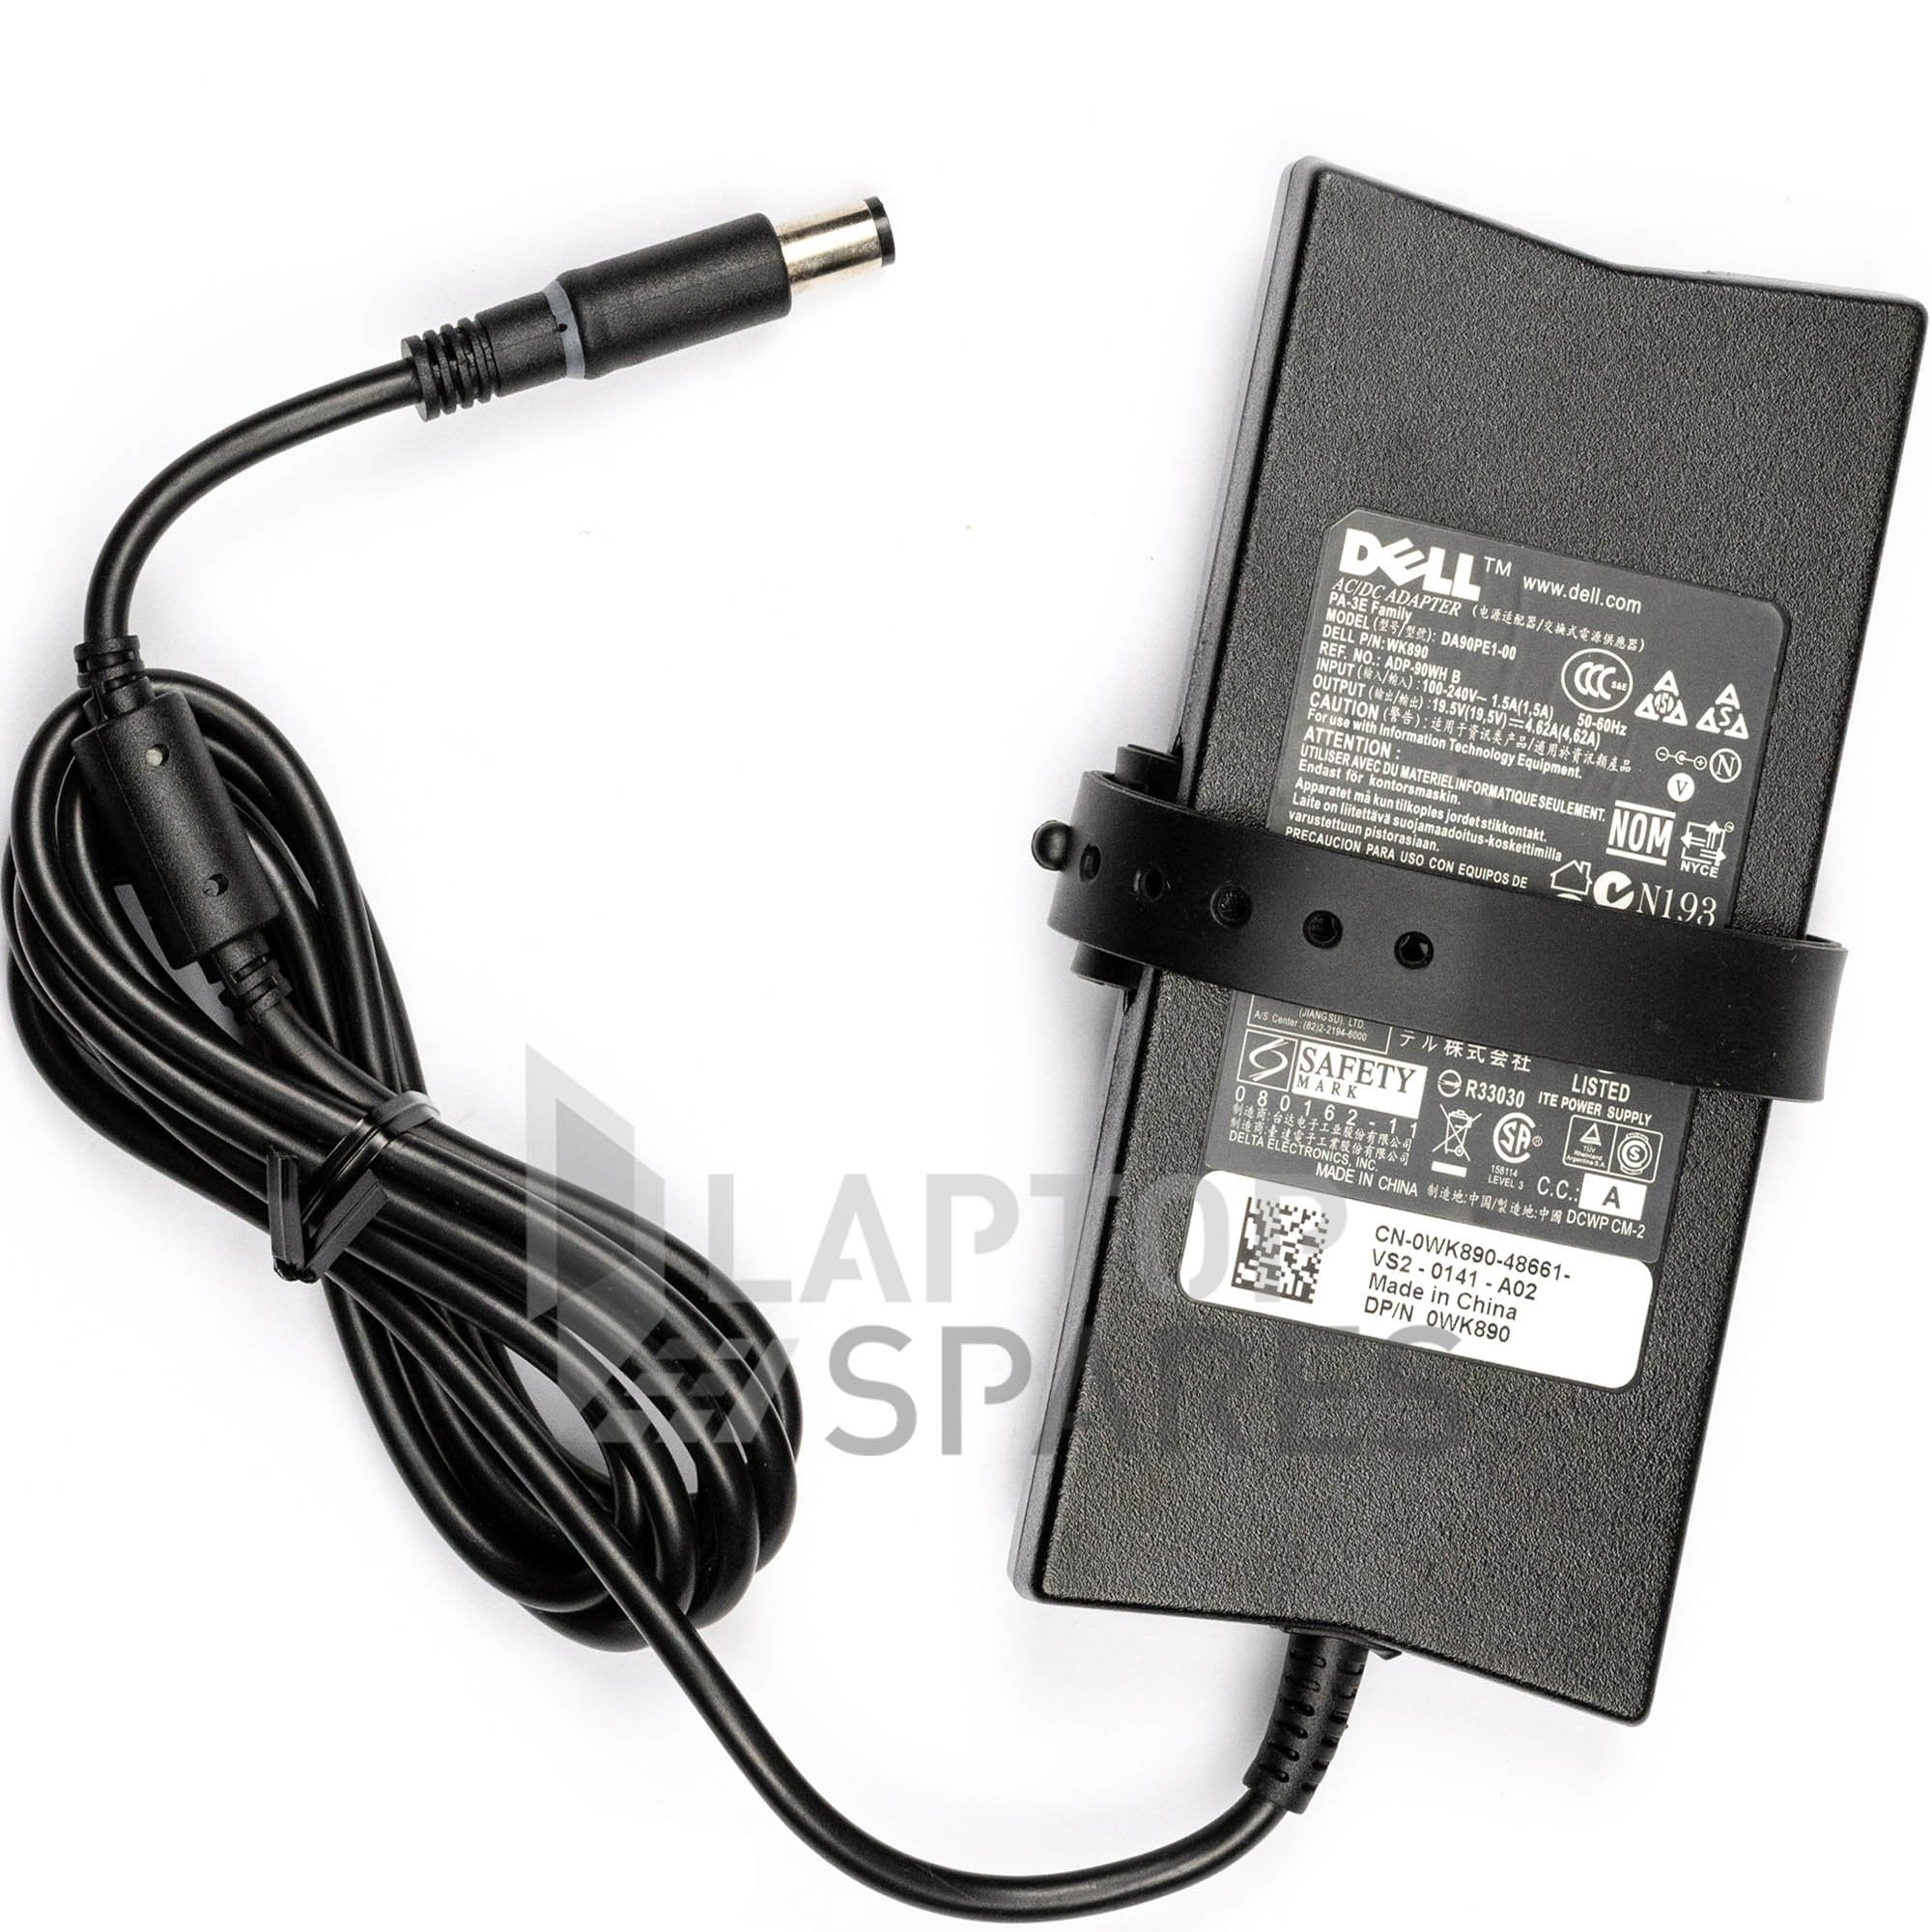 Dell Latitude 2110 2120 3150 Laptop Slim AC Adapter Charger